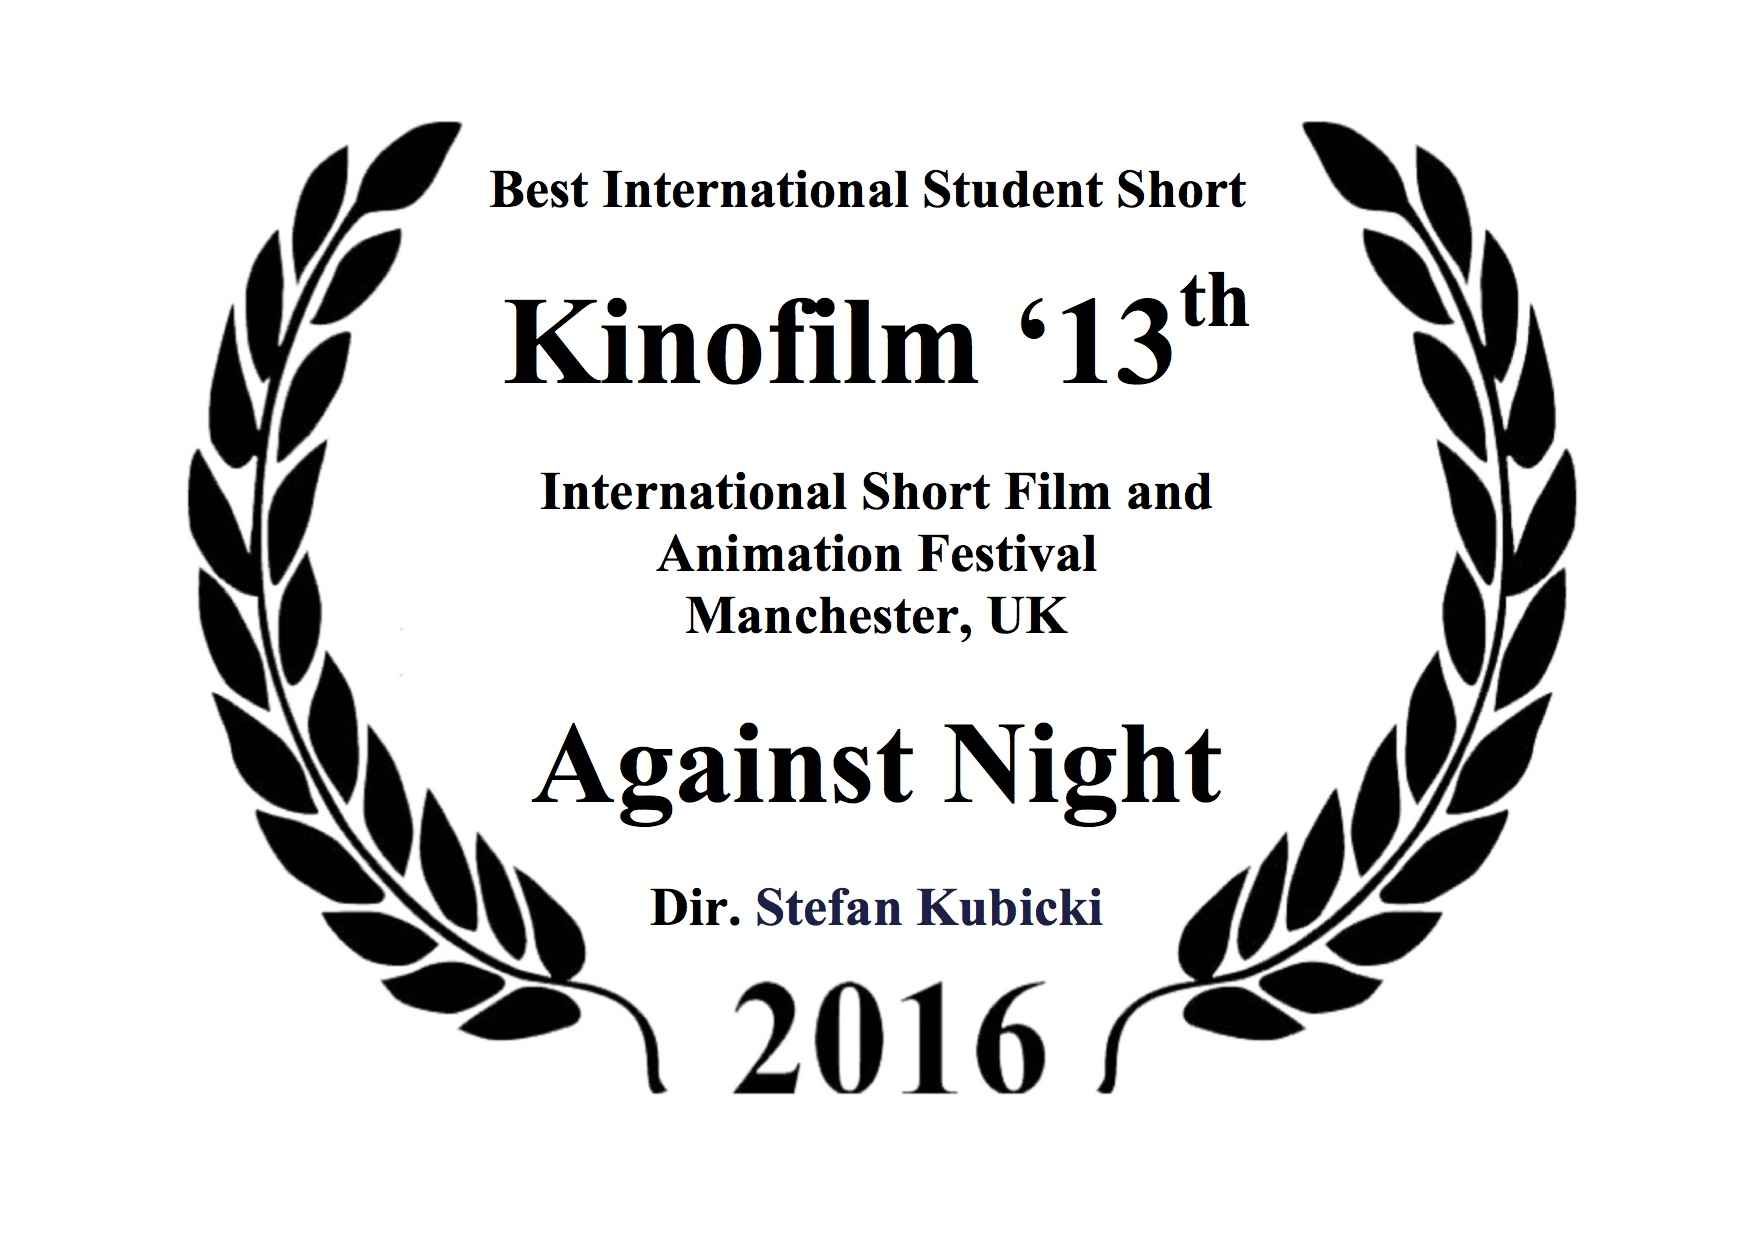 Best International Student Short